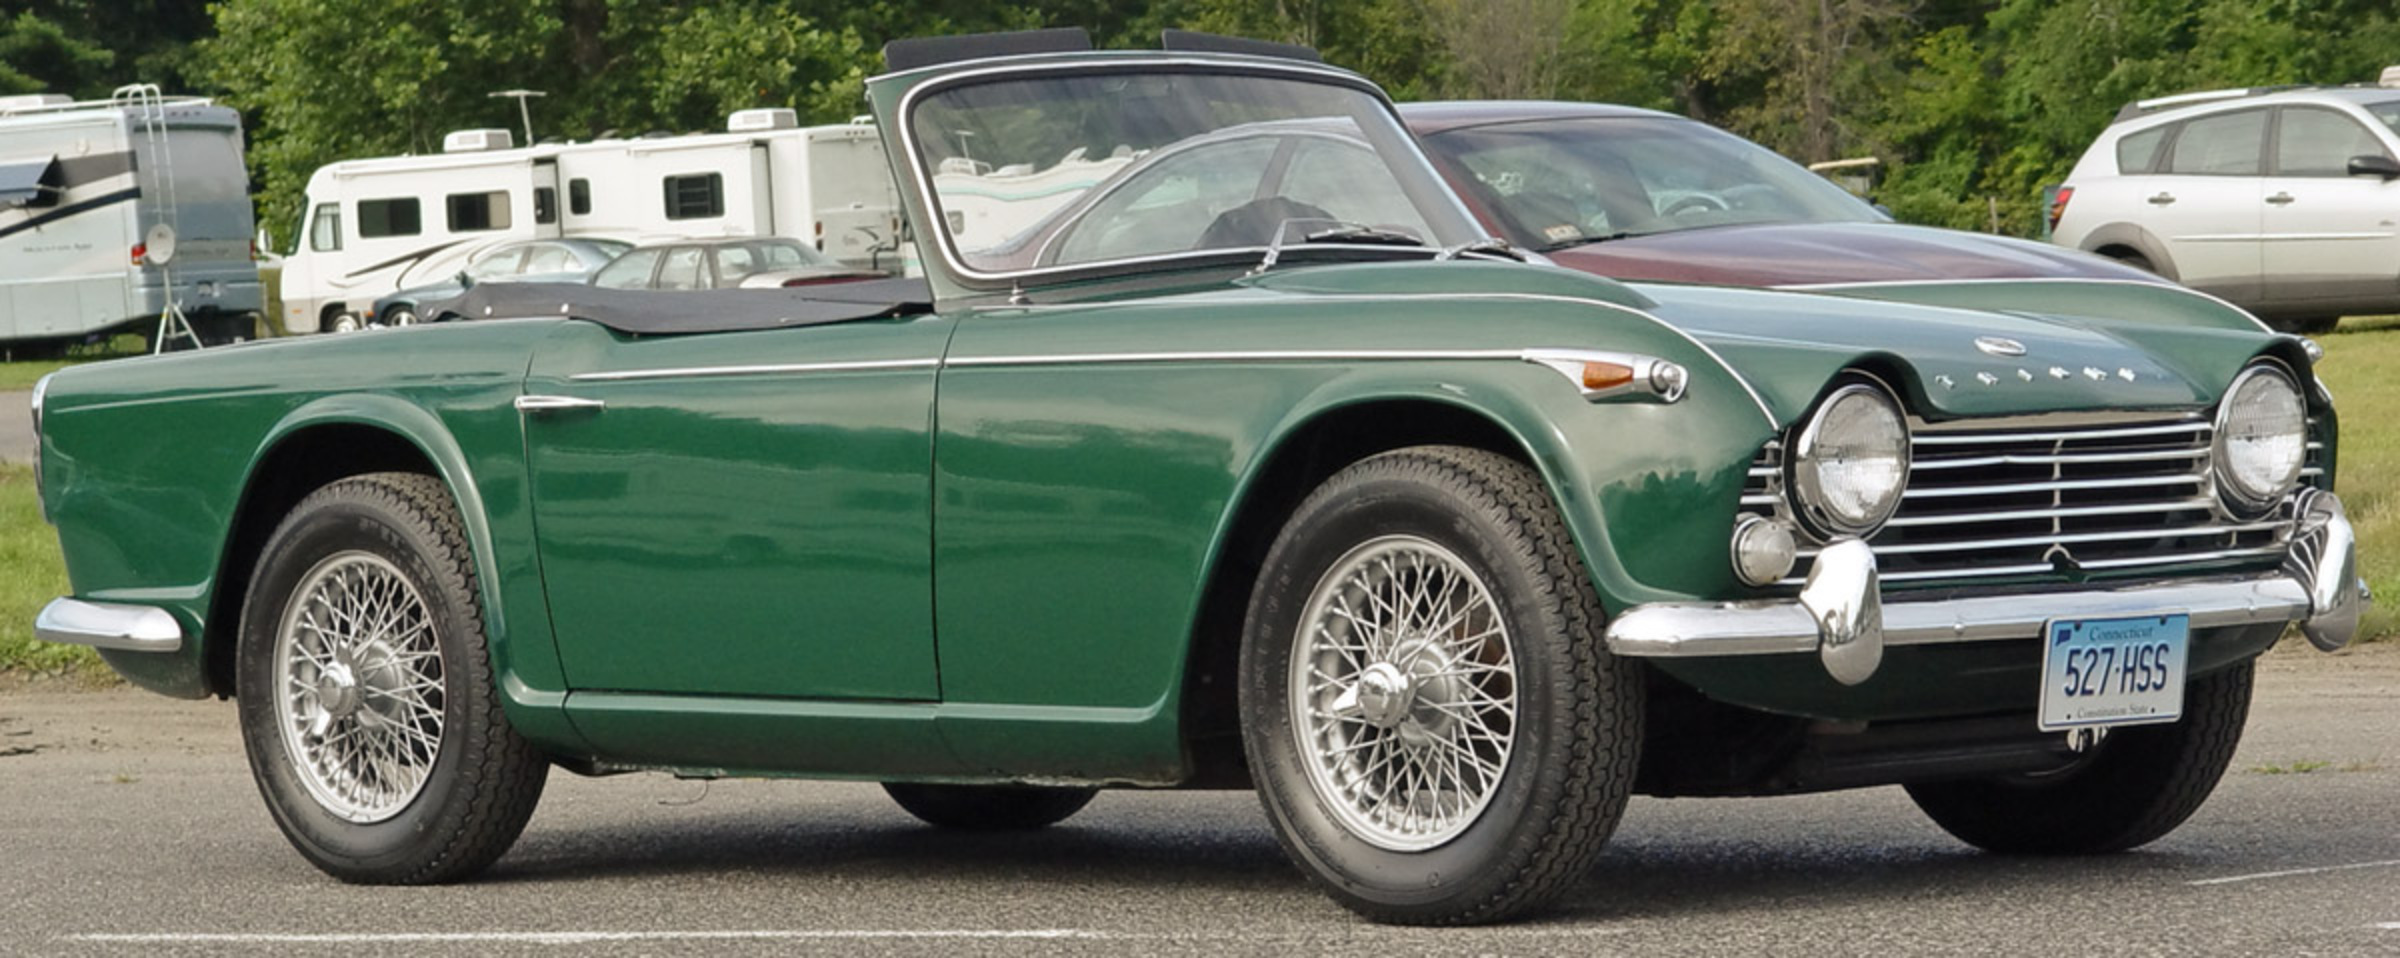 Triumph TR4A - Green - Side Angle